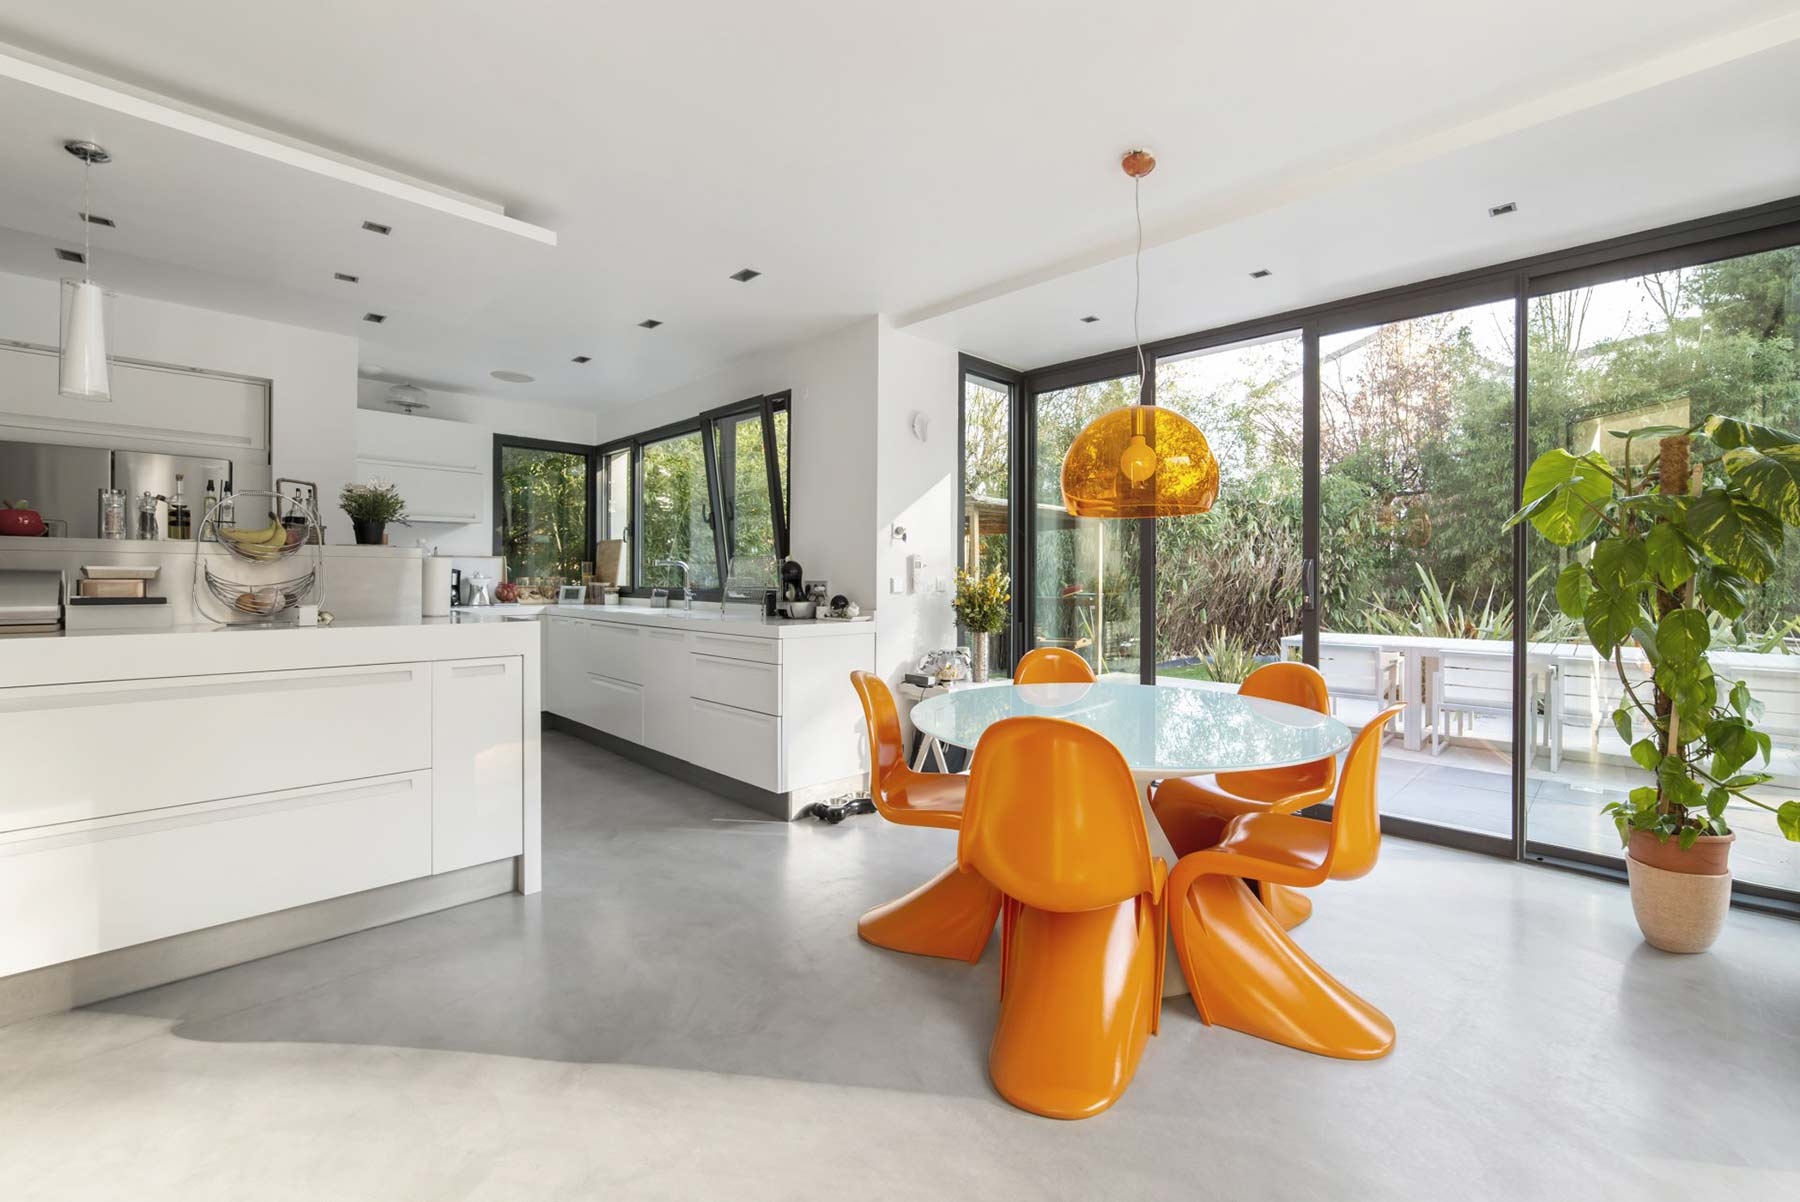 Garches - France - House , 15 rooms, 6 bedrooms - Slideshow Picture 2